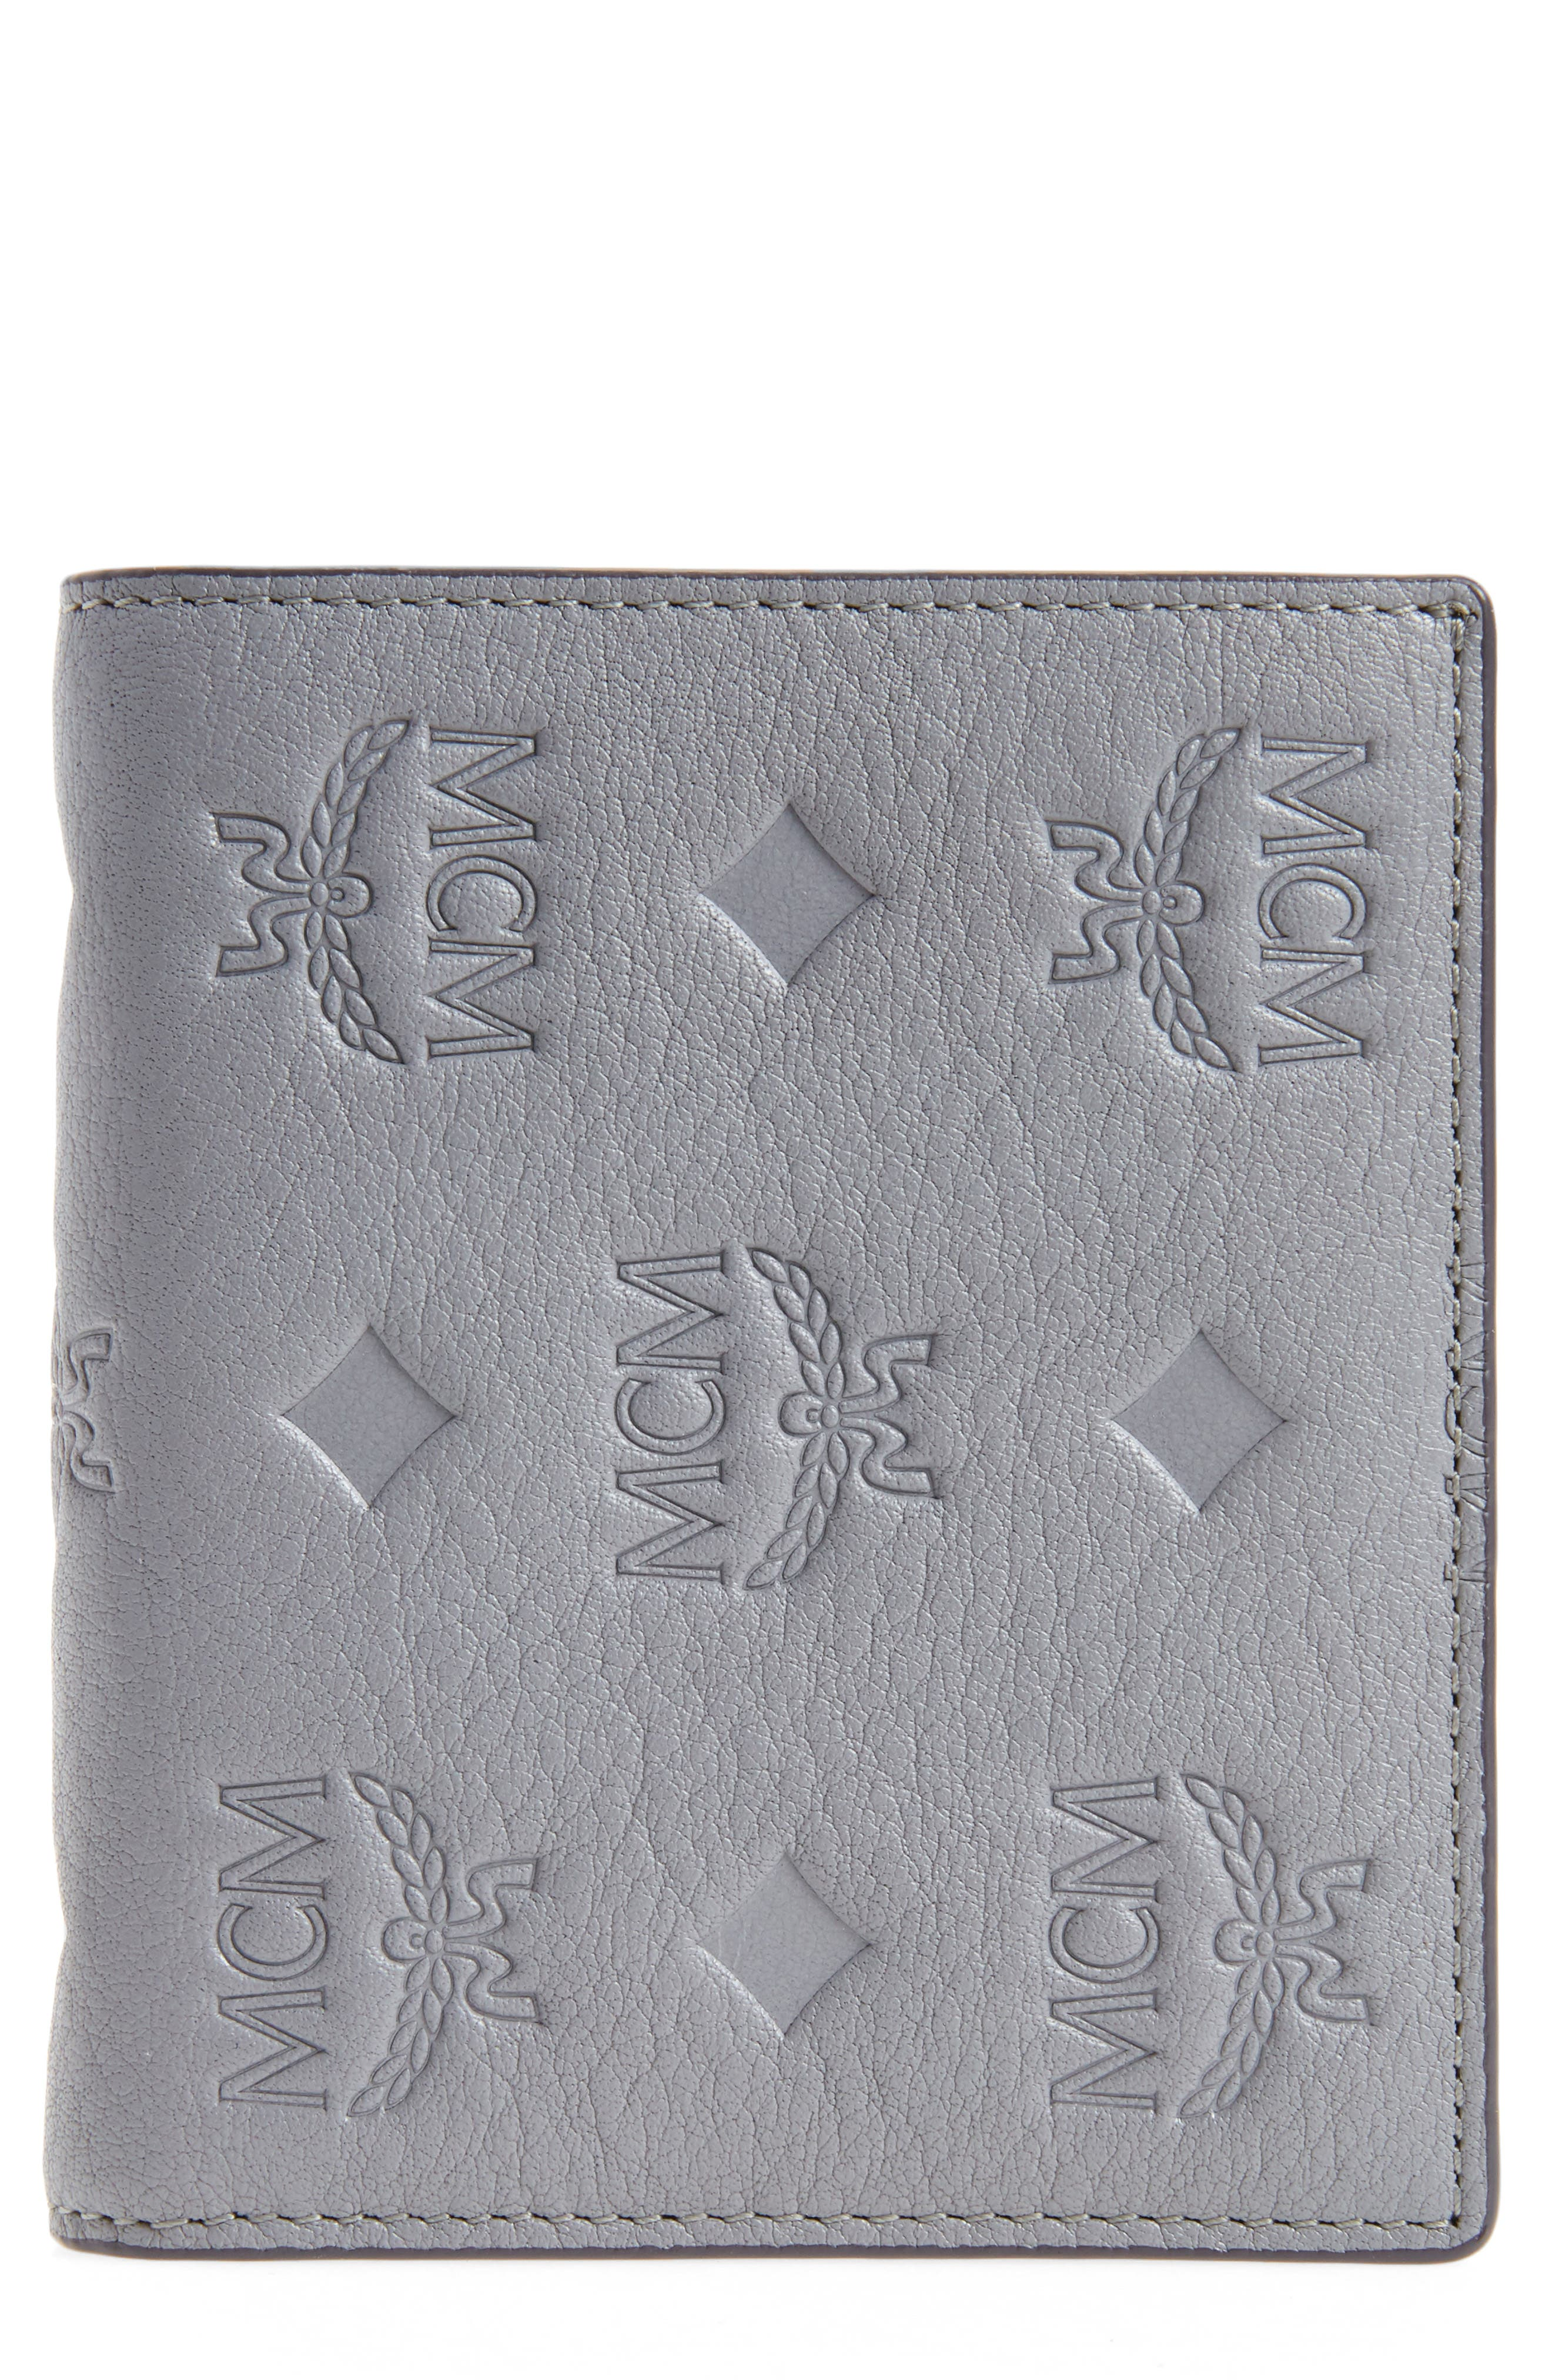 MCM Klara Leather Bifold Wallet